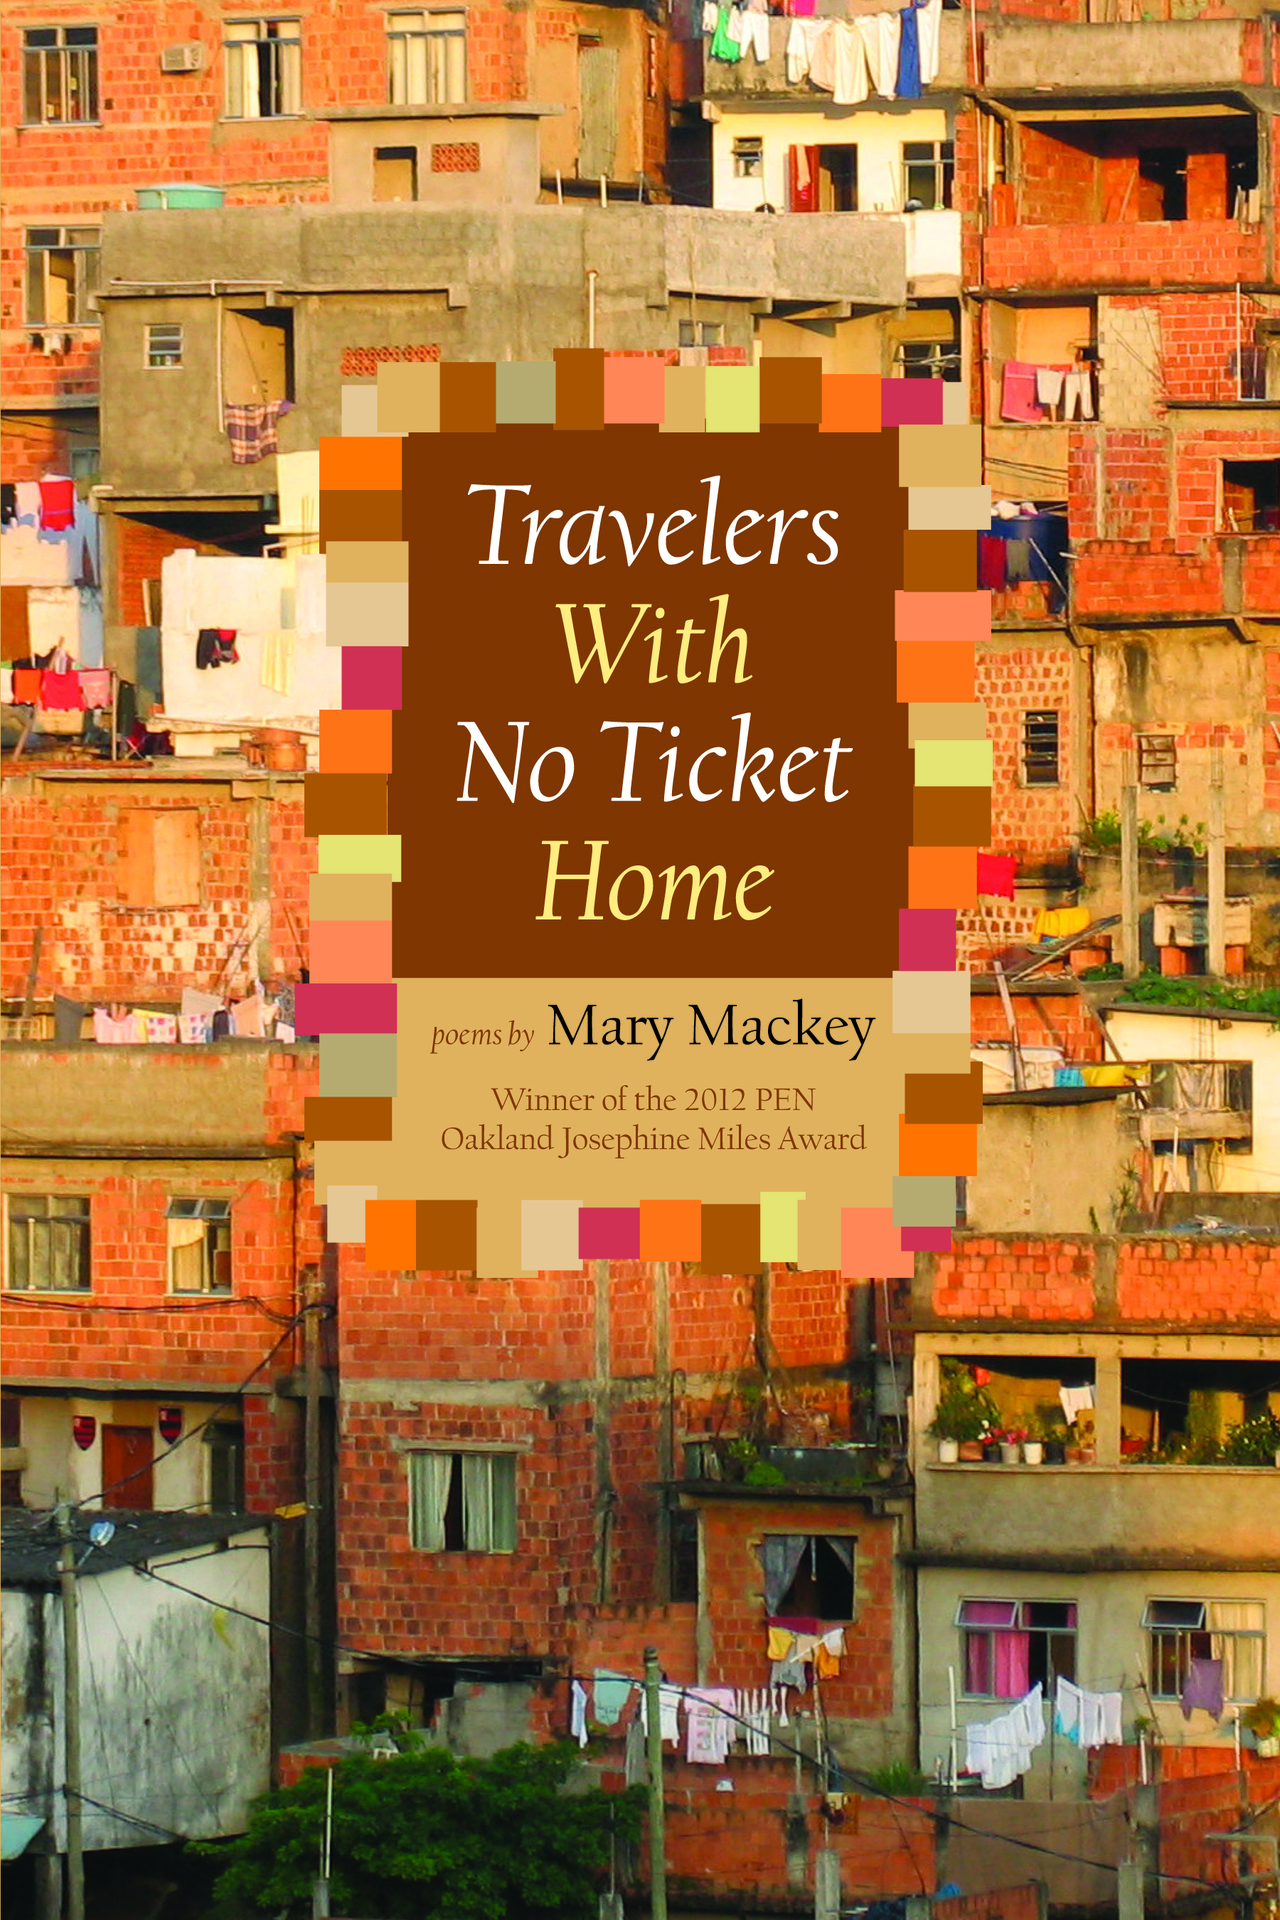 Front cover  travelers with no ticket home  poems by mary mackey  jpeg image  4.25 mb